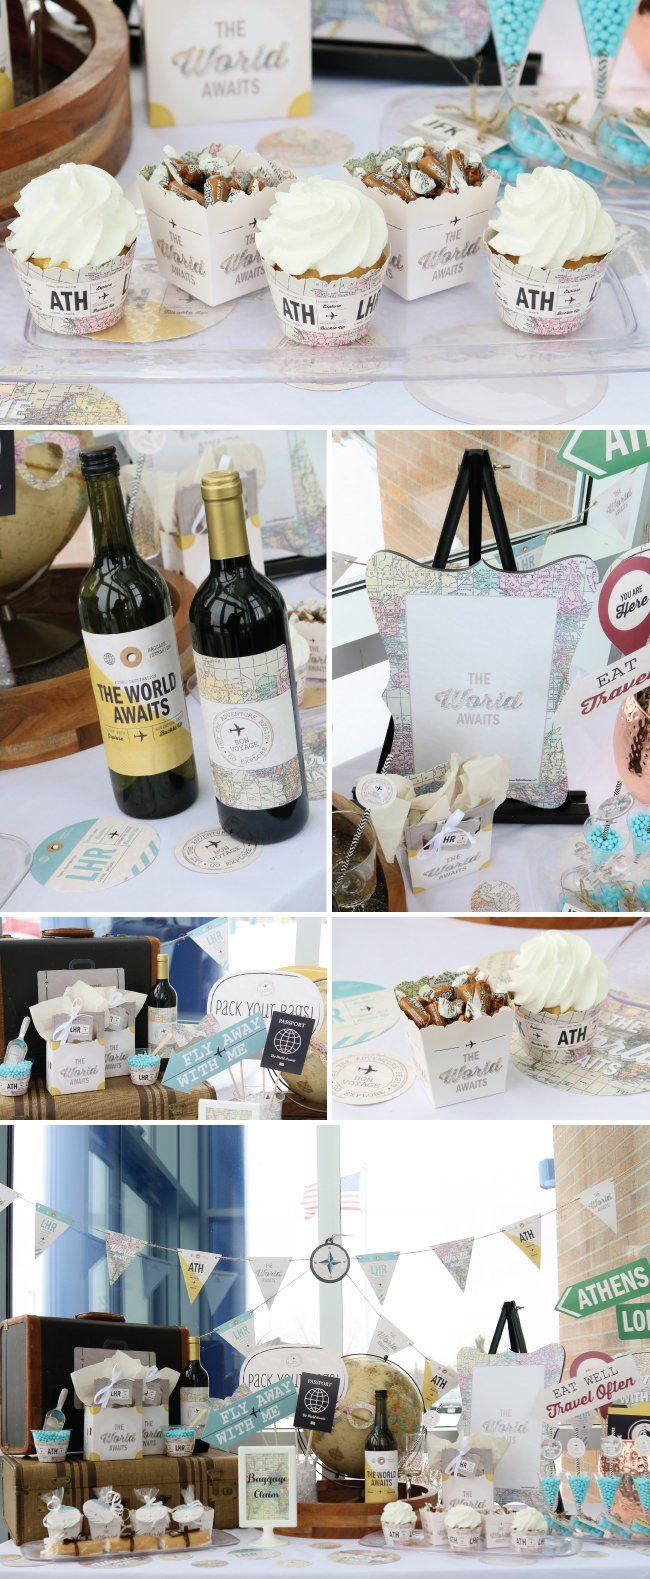 Travel Theme Ideas The World Awaits Vintage Travel Theme Party Ideas Perfect For